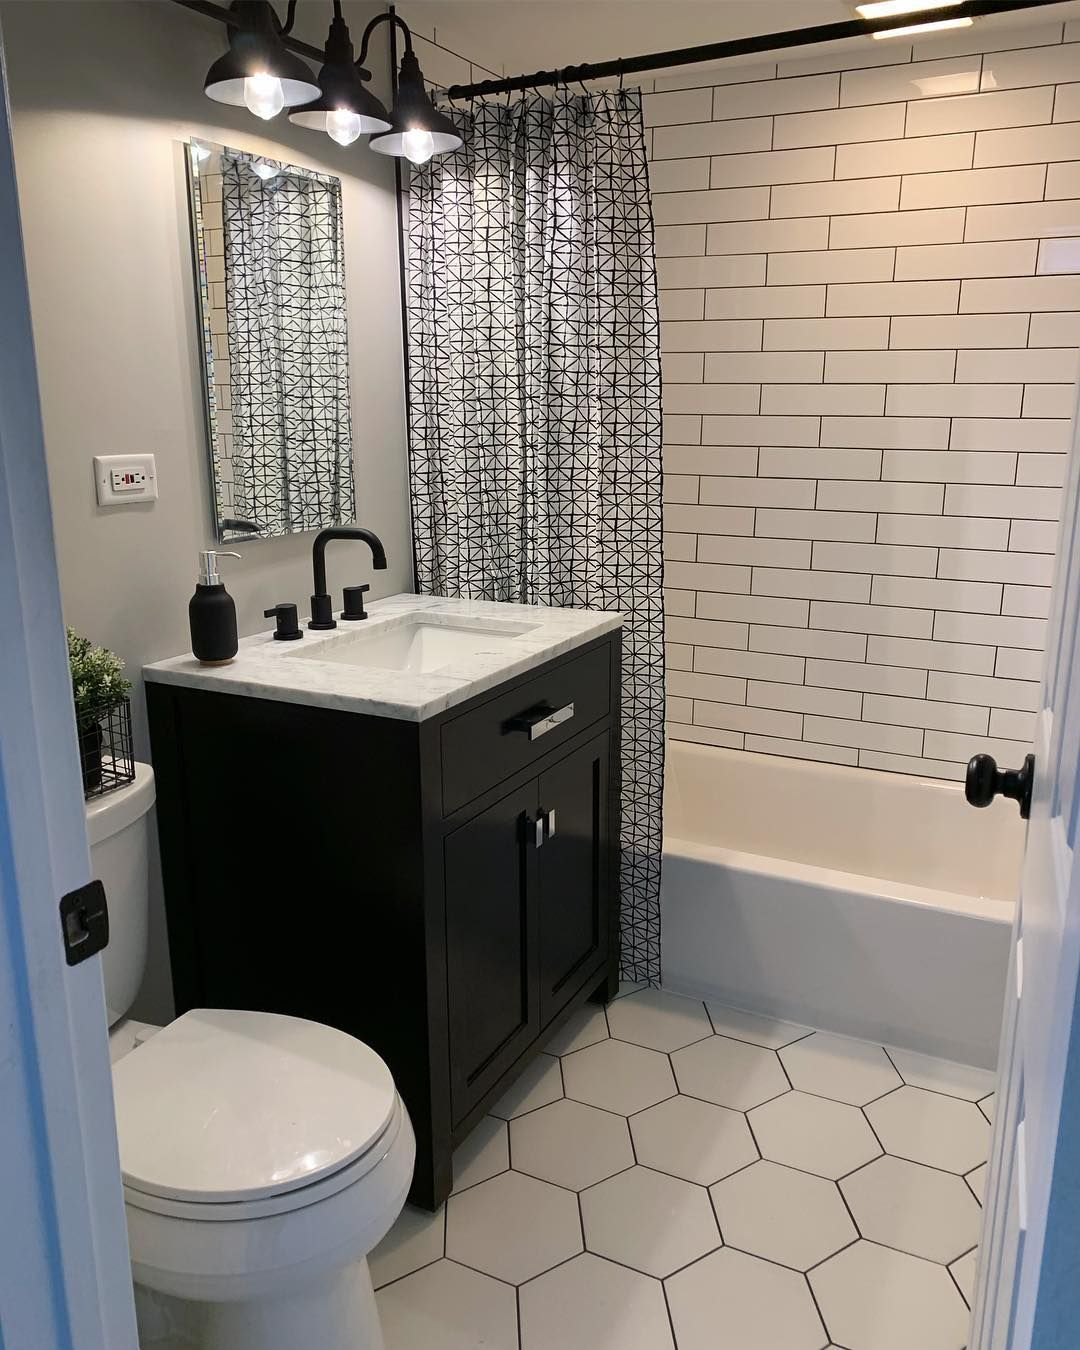 Kelsey Sears On Instagram My Bathroom Project Is Almost Complete I Love It So Much I Could Cry 1 Down 1 To Go Bathroom House Bathroom Farmhouse Bathroom